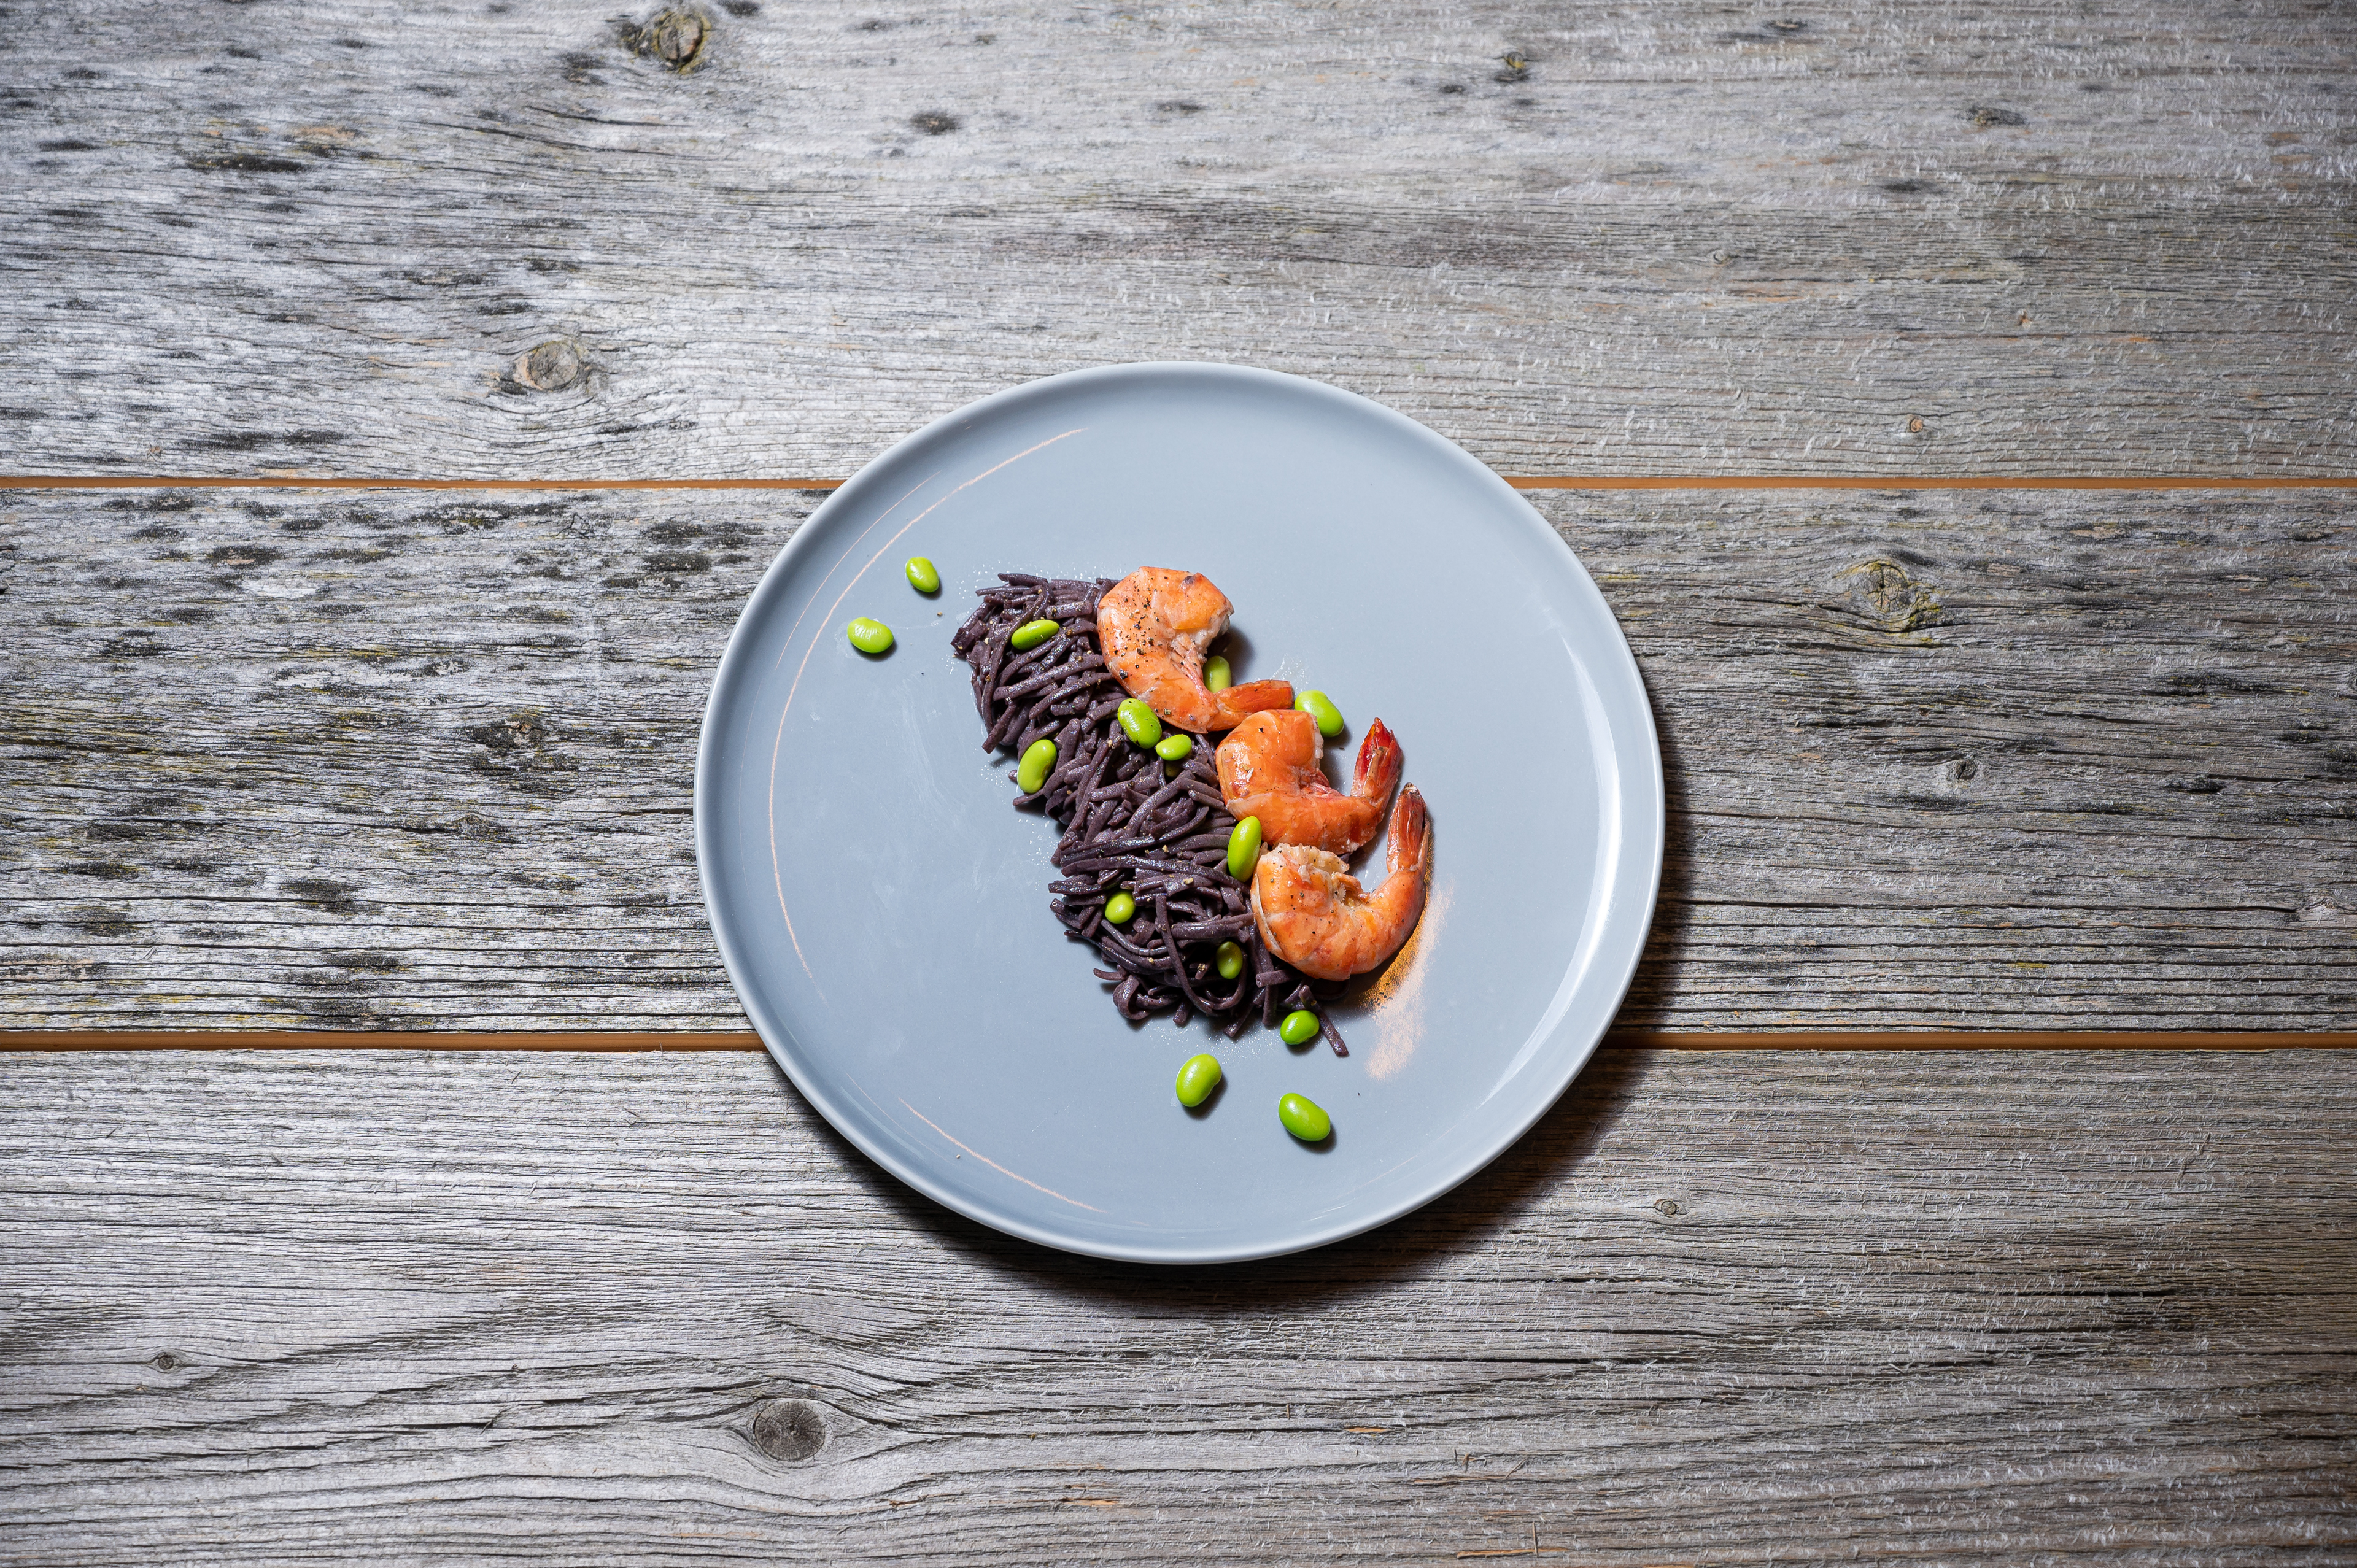 Black rice noodles with prawns, edamame and lime sauce